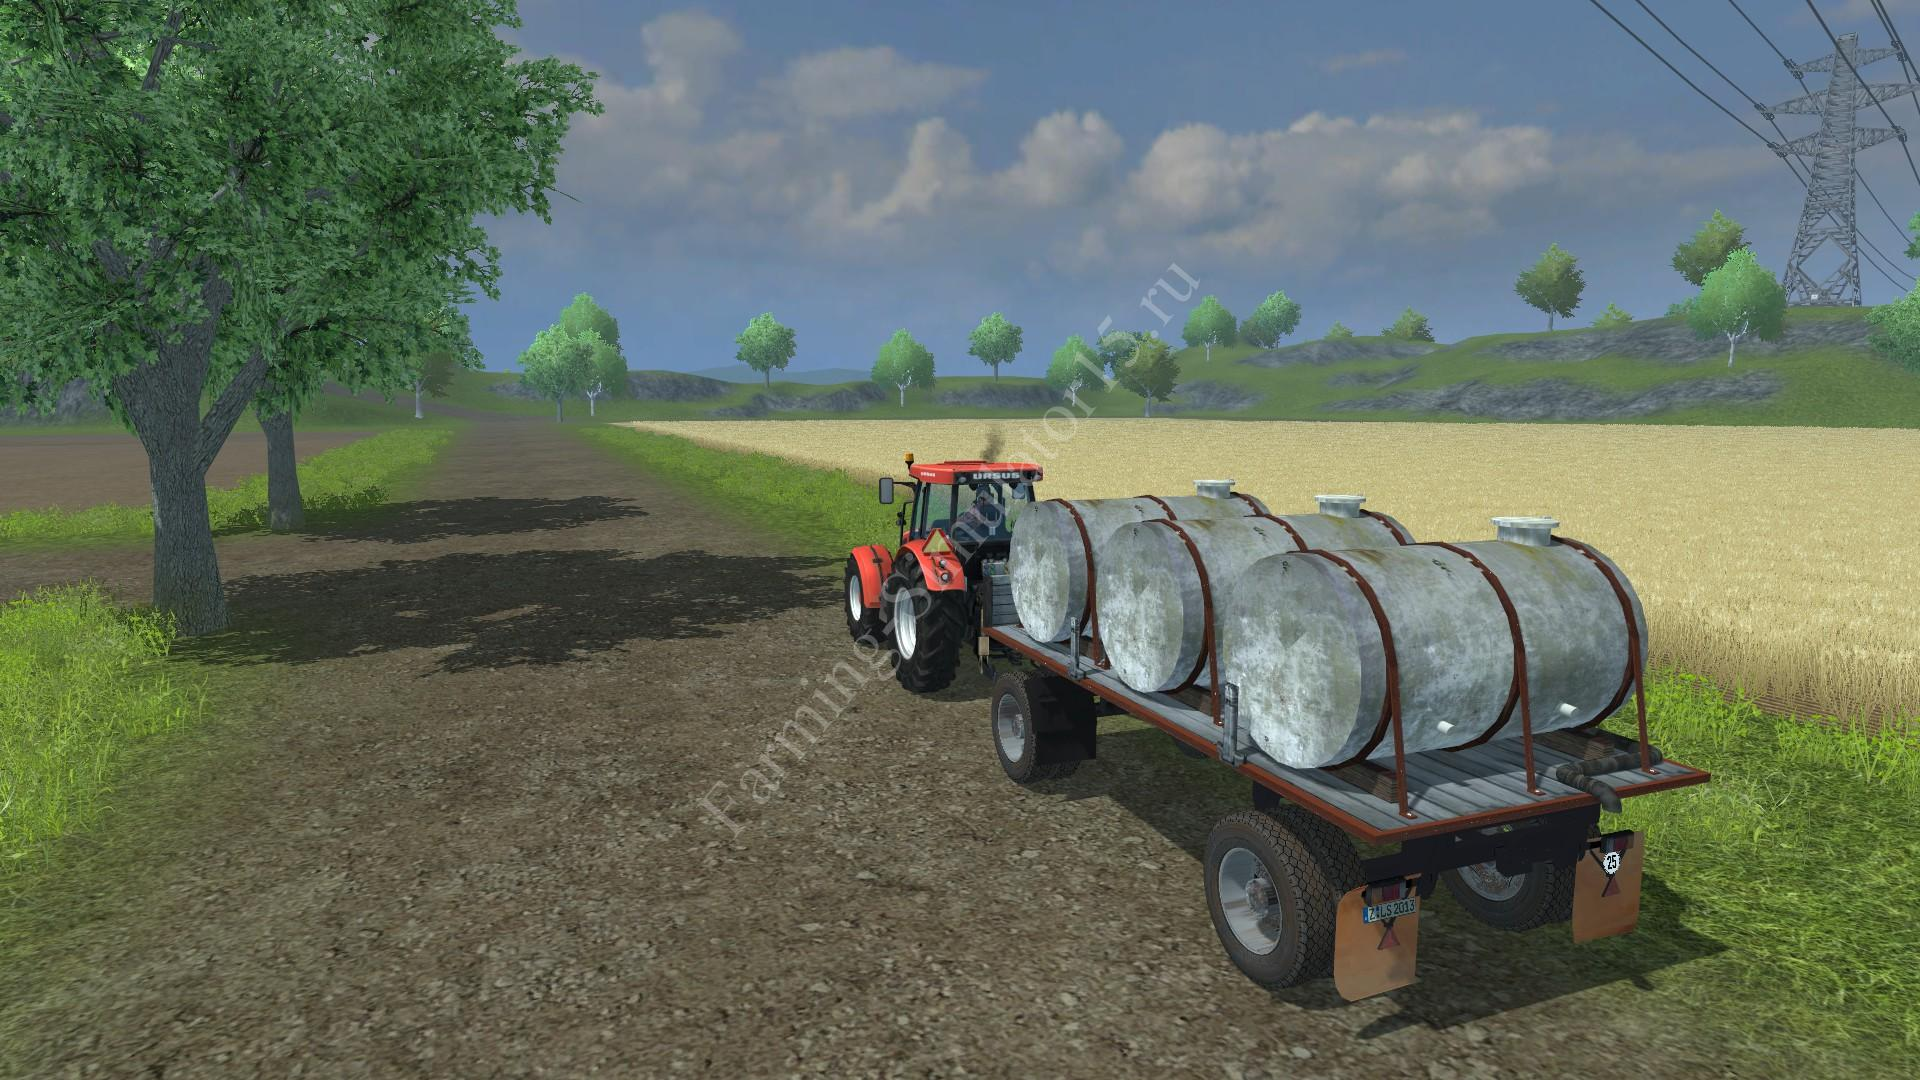 Мод прицепа с поворотным кругом HW milk water barrel v 2.0 Farming Simulator 2013, Farming Simulator 13